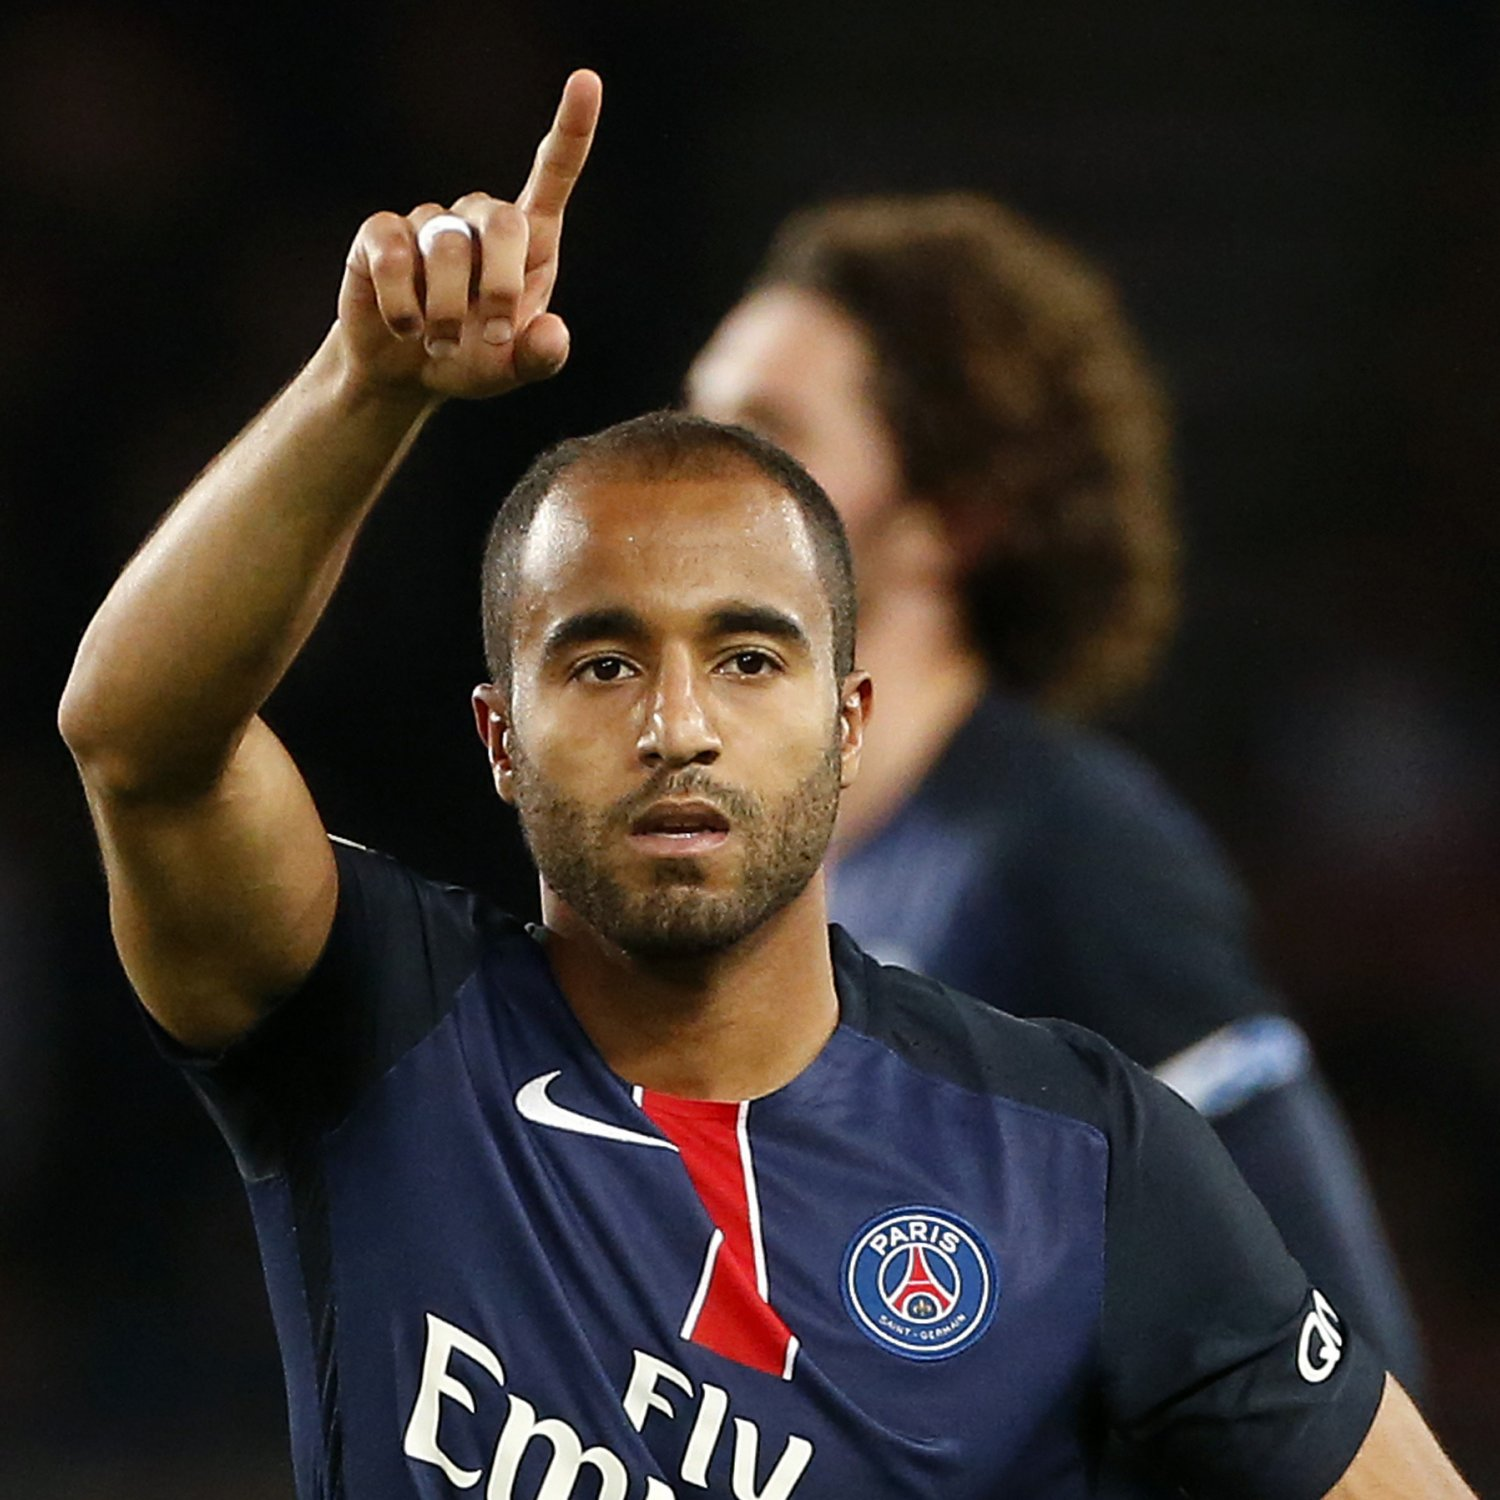 Lucas Moura Equipos Actuales: Manchester United Transfer News: Latest On Lucas Moura And